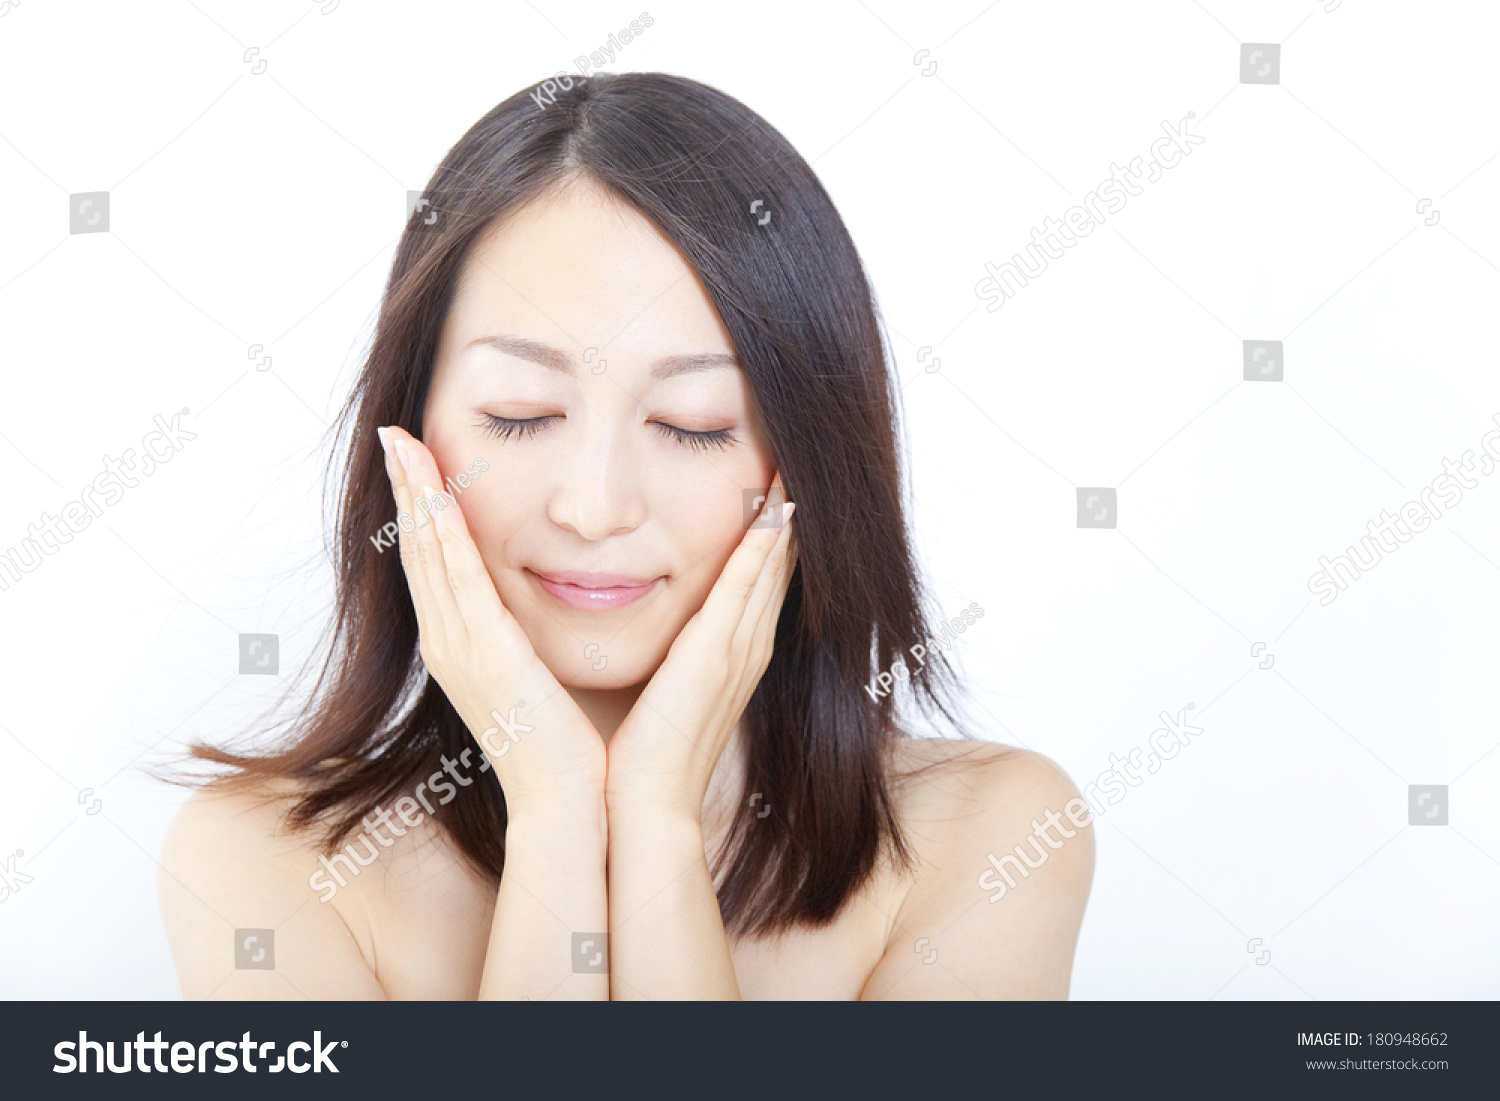 Japanese Woman Placing Her Hands On Stock Photo 180948662